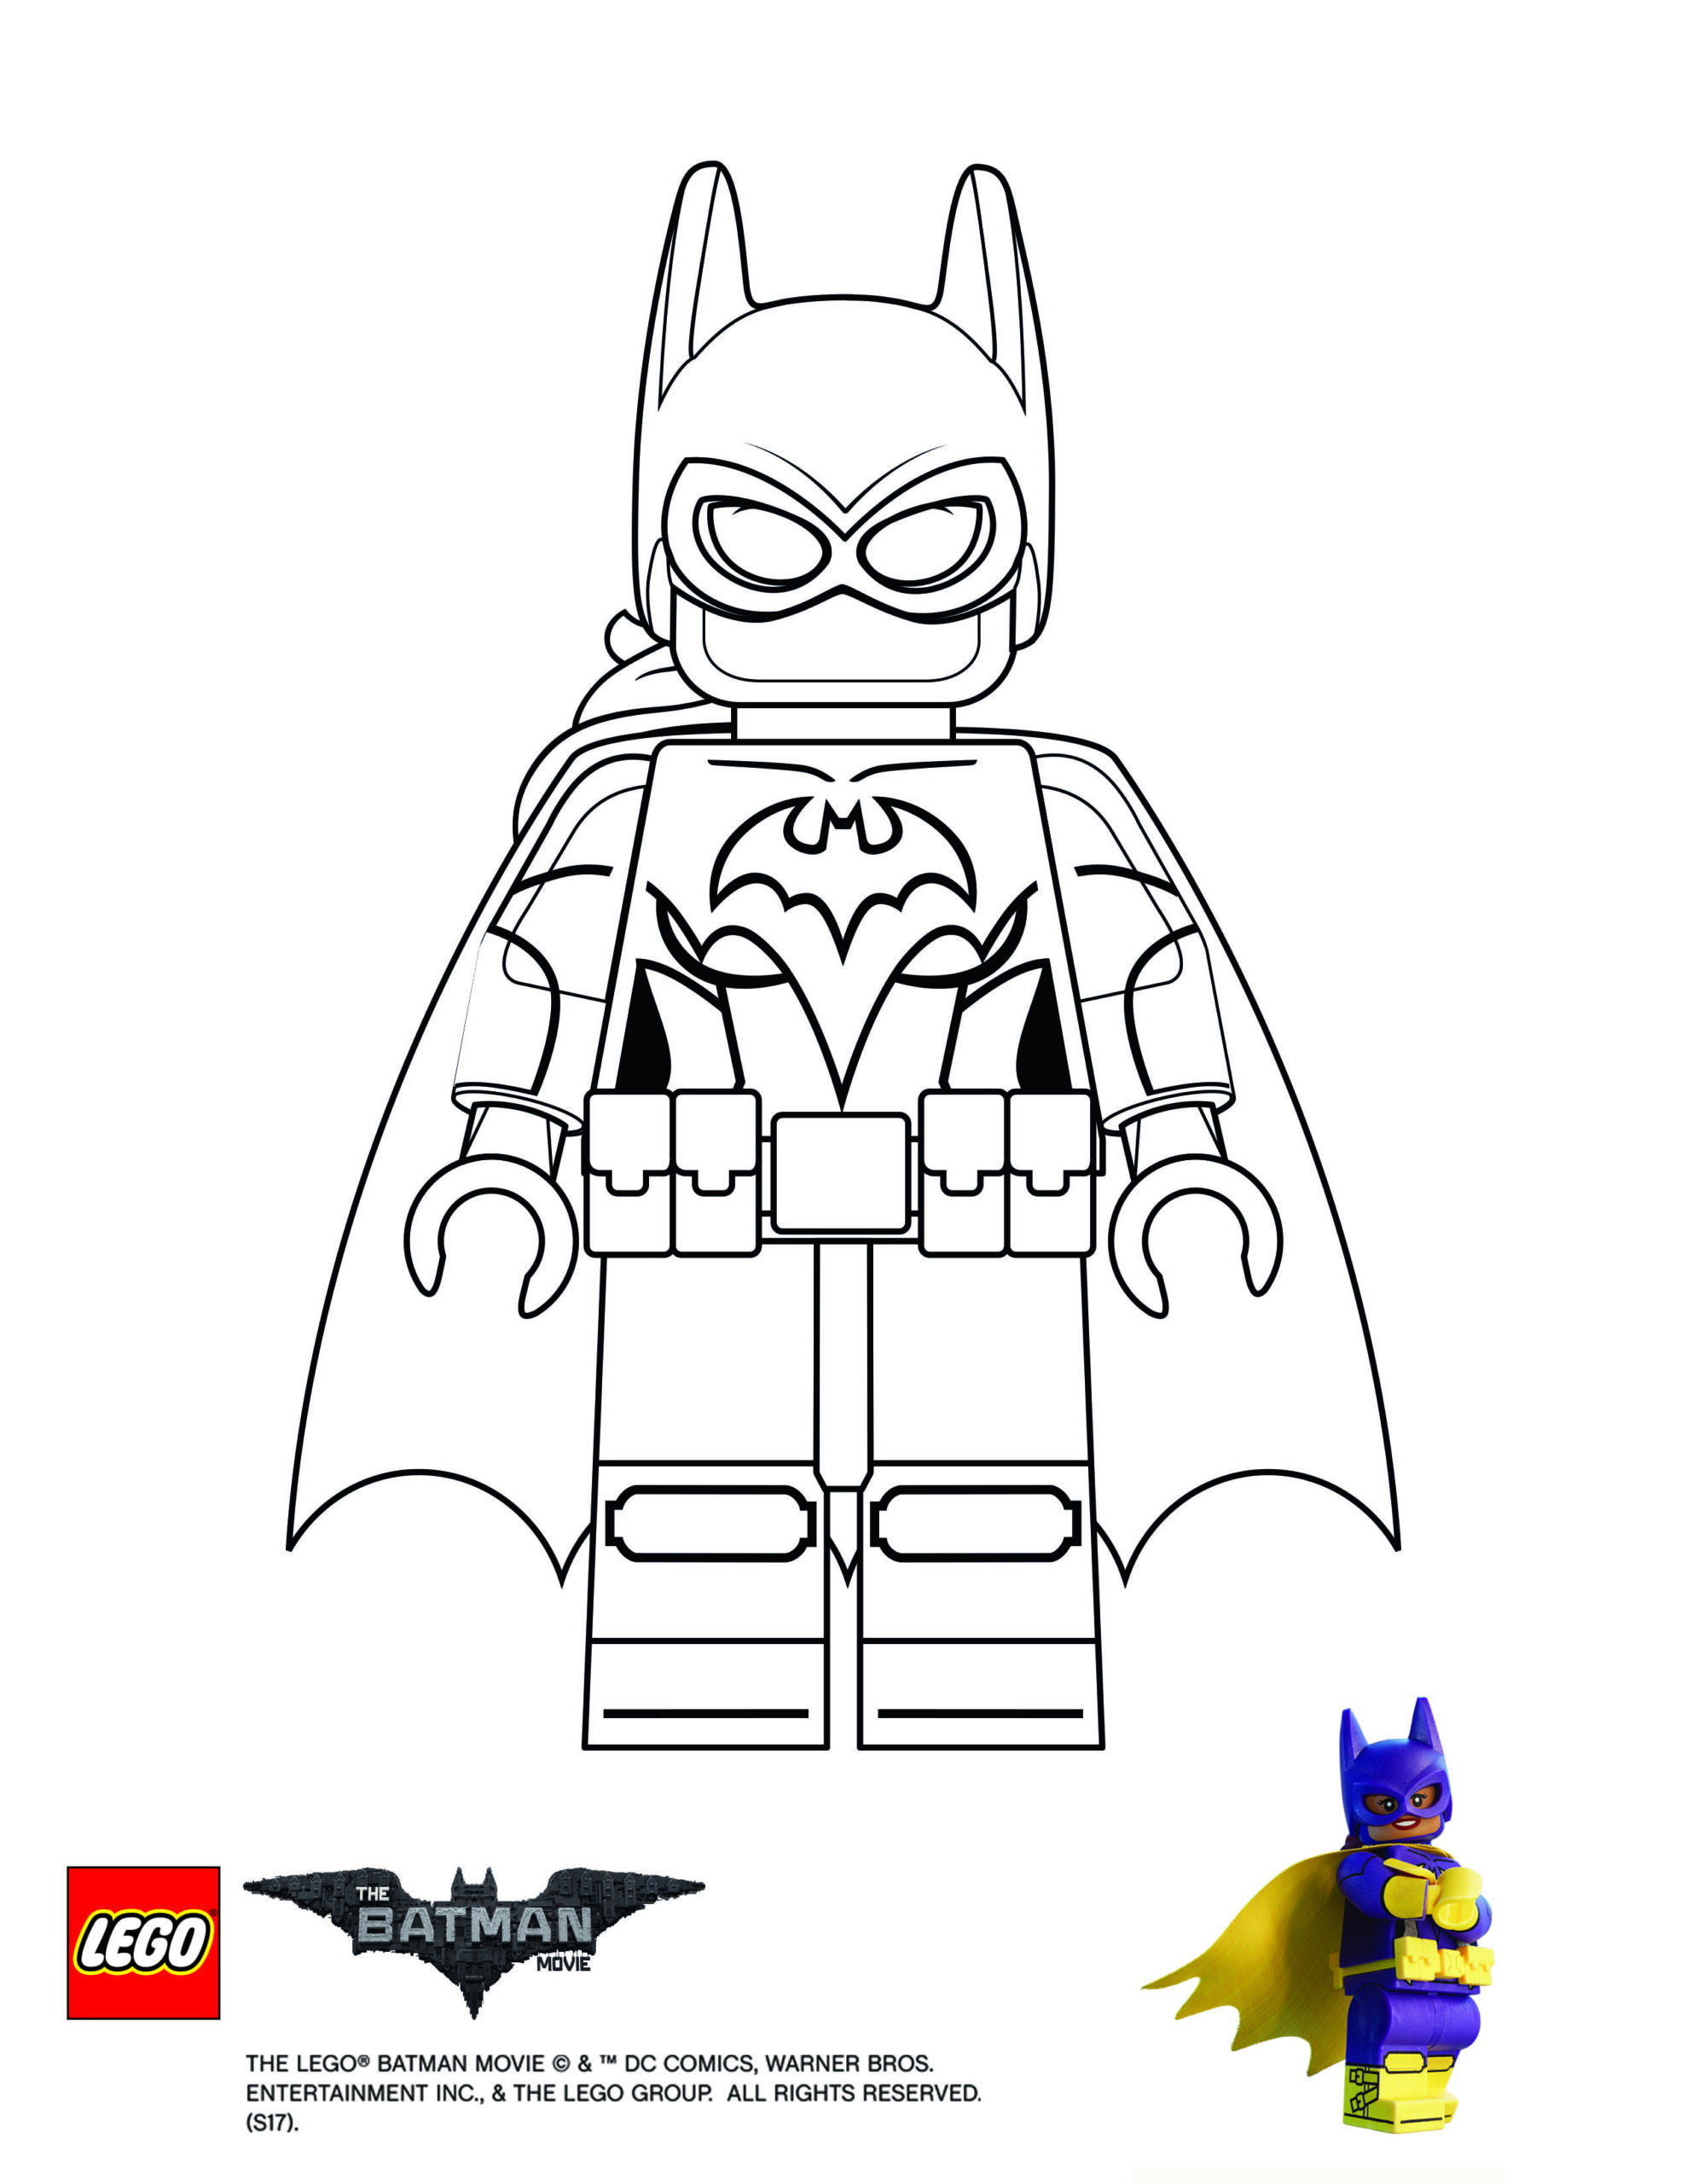 Magnifique Coloriage Lego Batman Movie 95 Pour Coloriage Pages by Coloriage Lego Batman Movie